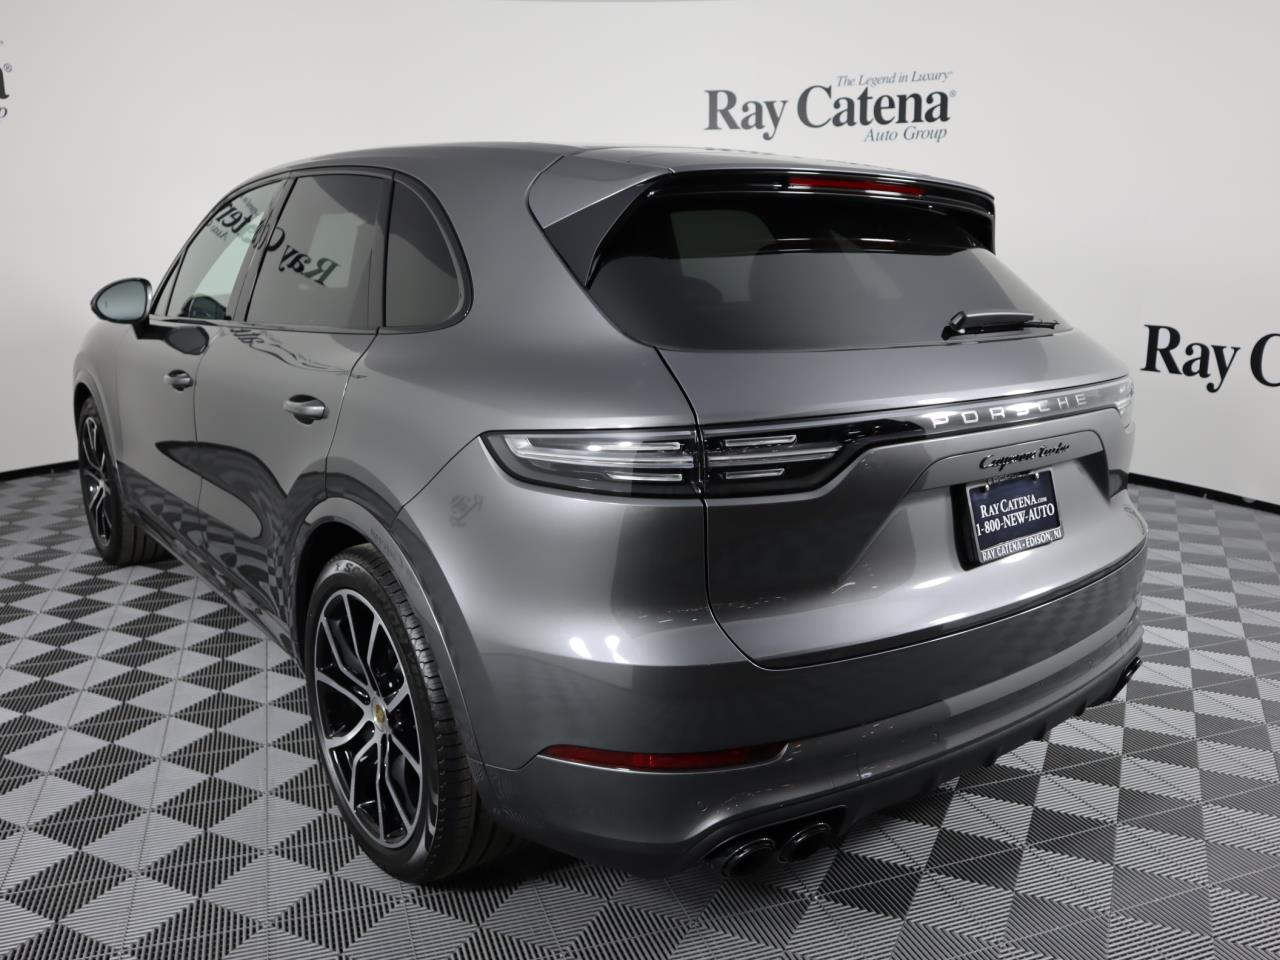 New 2021 Porsche Cayenne Turbo